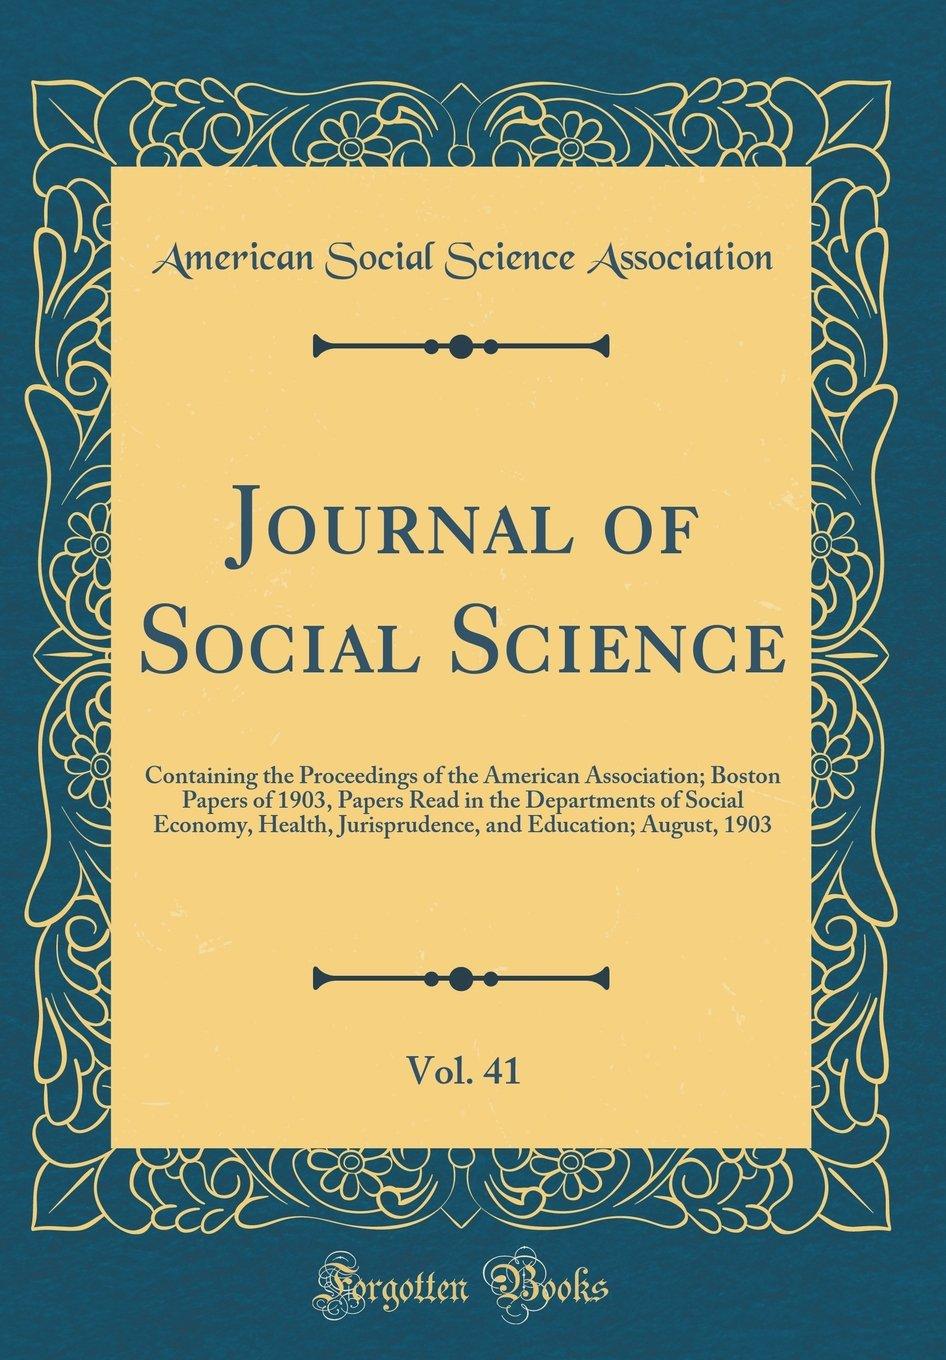 Download Journal of Social Science, Vol. 41: Containing the Proceedings of the American Association; Boston Papers of 1903, Papers Read in the Departments of ... and Education; August, 1903 (Classic Reprint) PDF